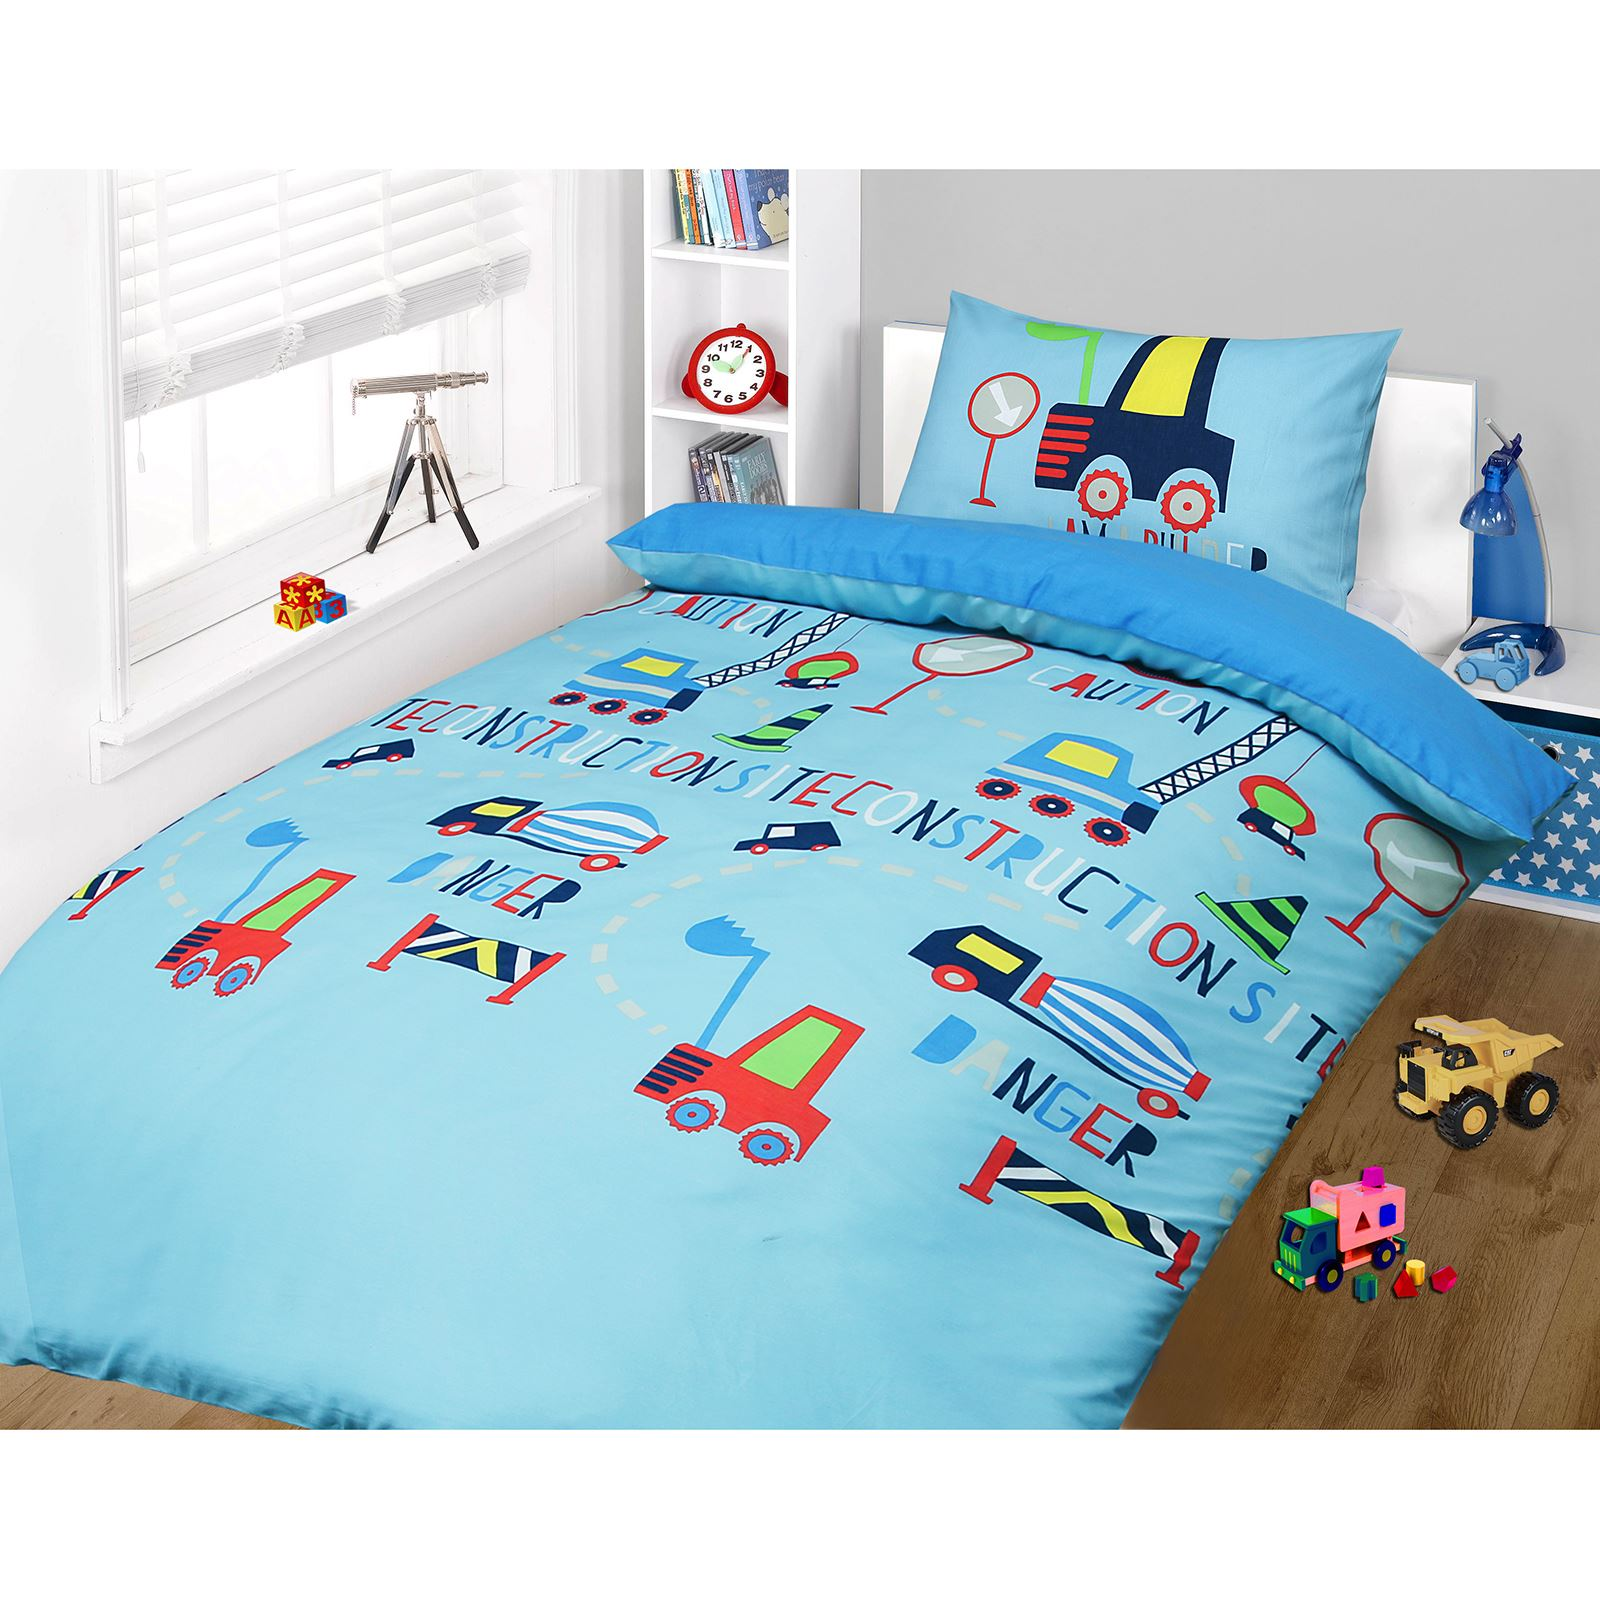 Children Clearance New Kids Girls Boys Quilt Duvet Cover